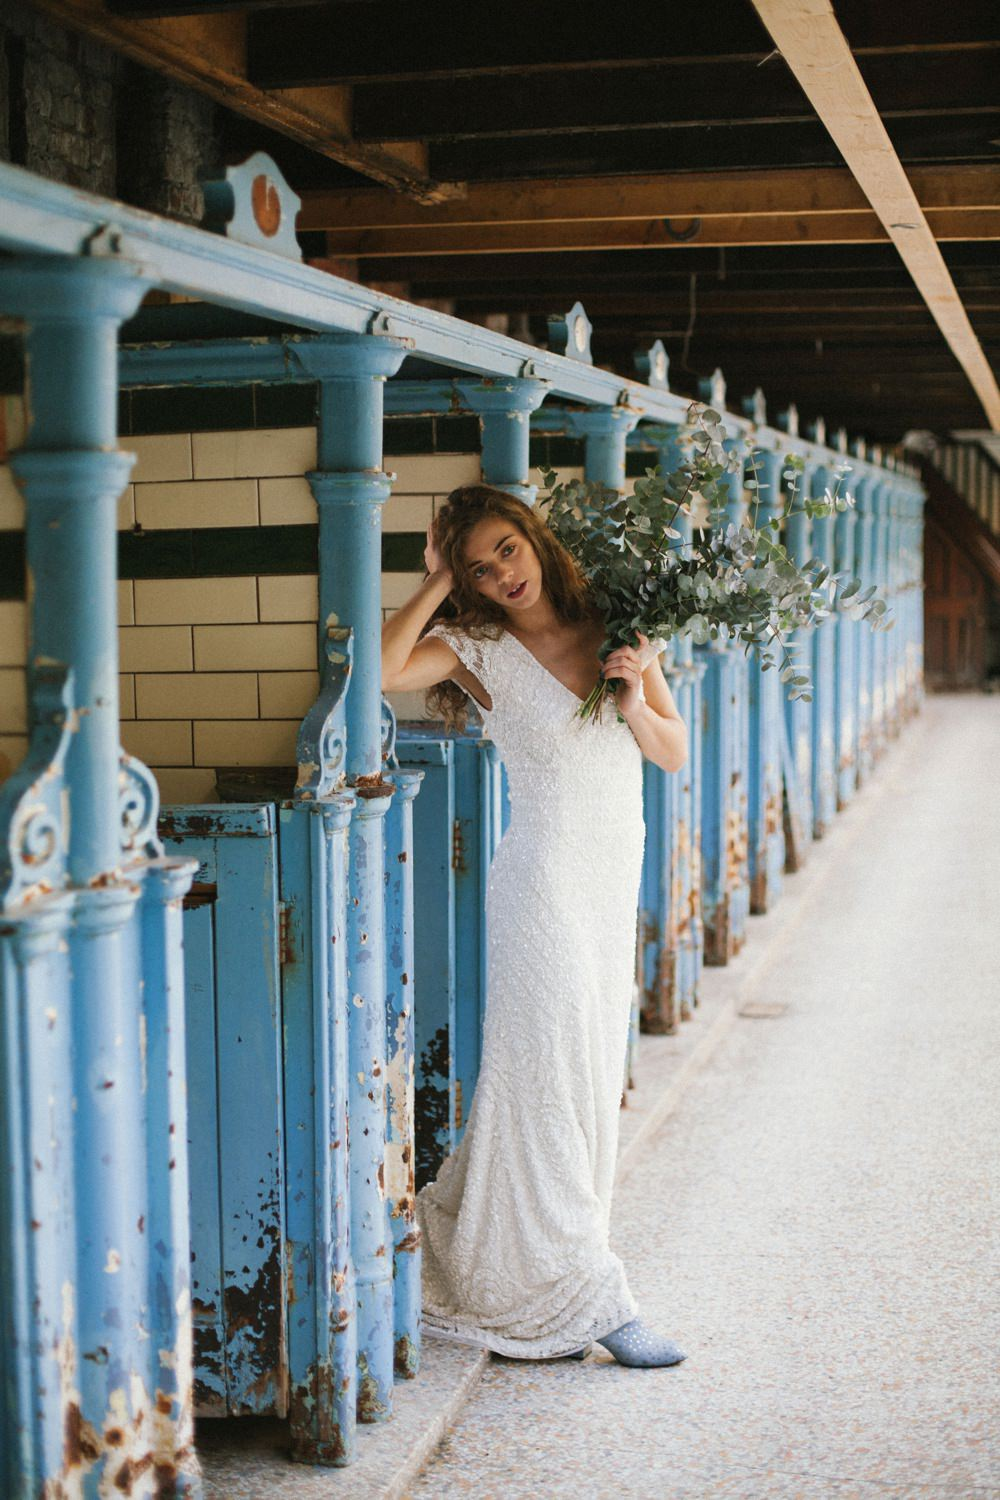 An-Ethereal-Green-and-Foliage-Inspired-Bridal-Edit-at-Victoria-Baths-by-Leah-Henson-Photography-Adored-Bride_0008.jpg